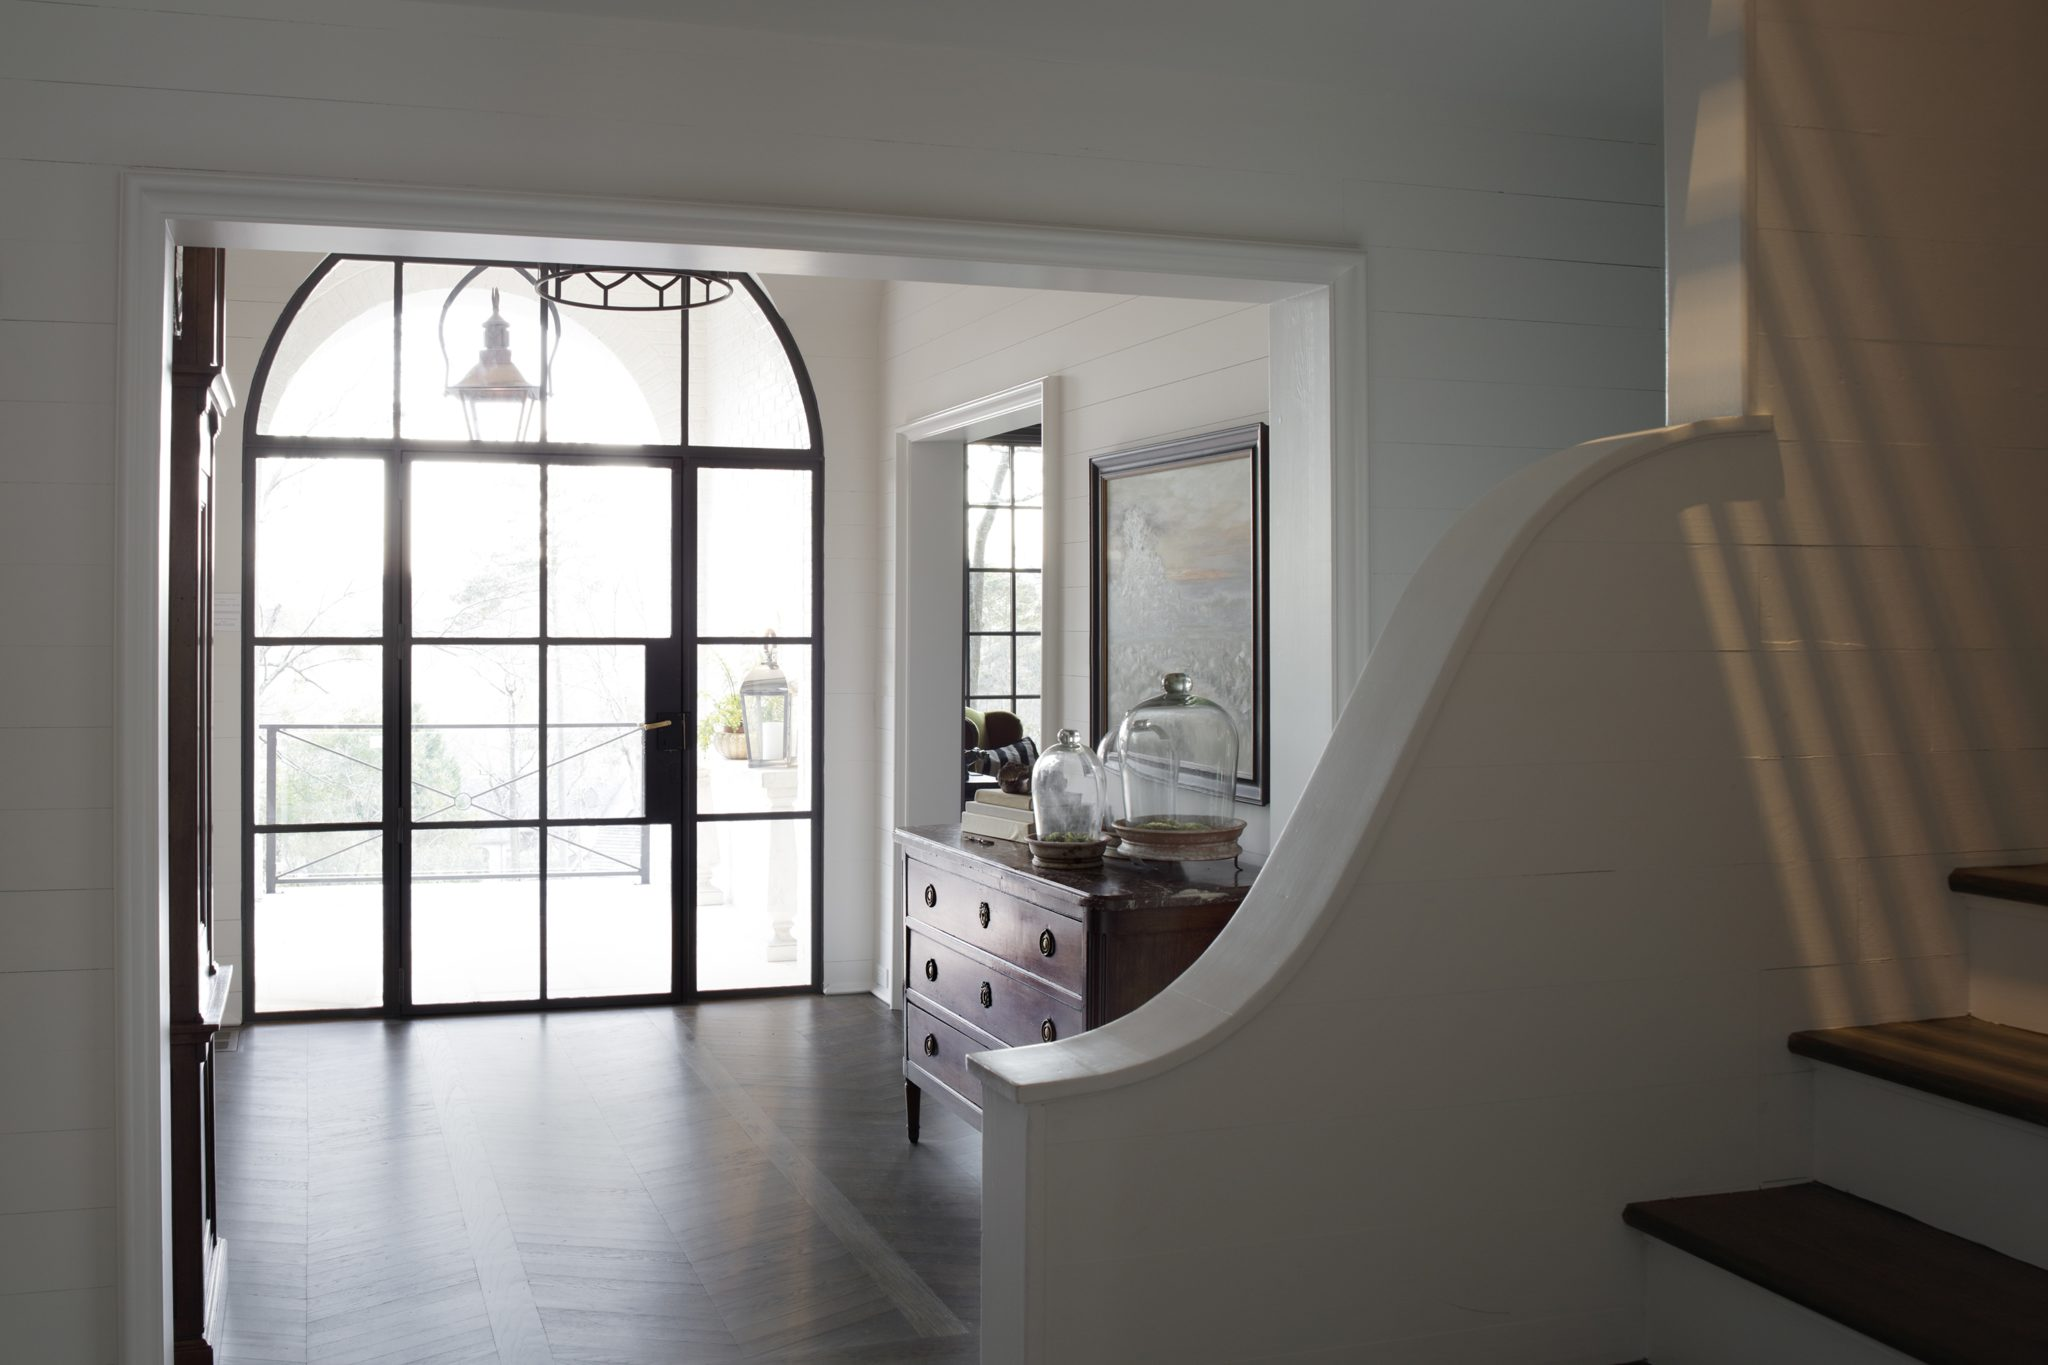 An expansive, glassfront door creates a seamless transition from outdoors to indoors.